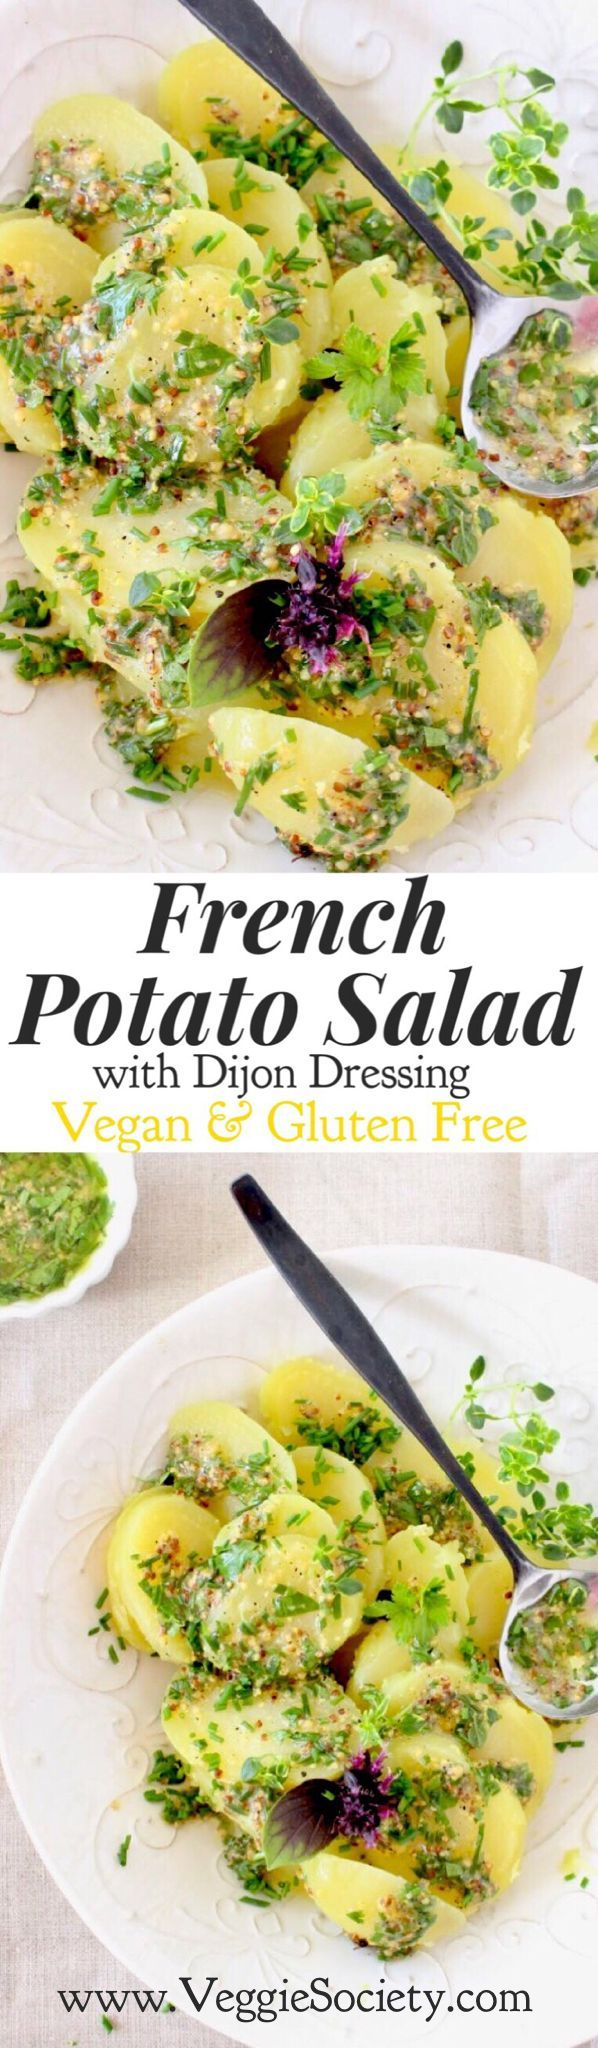 Vegan French Potato Salad Recipe with Dijon Mustard Dressing and Fresh Herbs | Healthy • Easy • Gluten-free | VeggieSociety.com @VeggieSociety